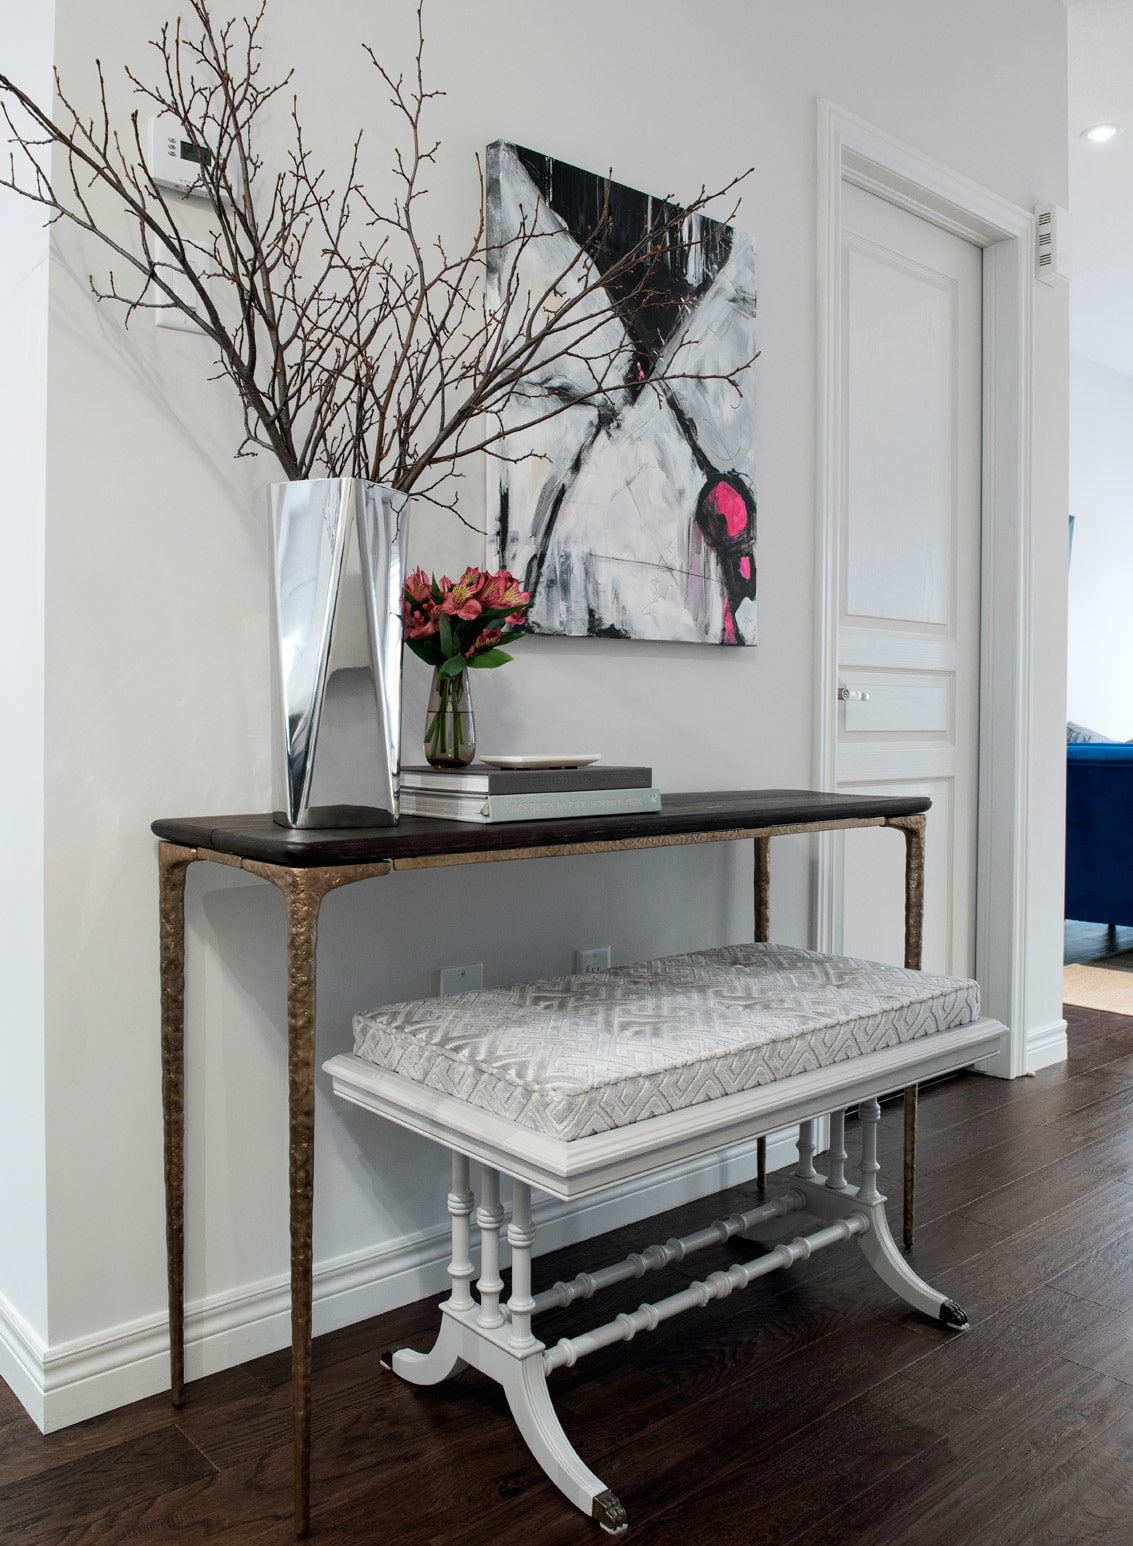 Antique console table featuring antique bench with grey velvet upholstery and mirrored silver planter and black, white and pink oil painting